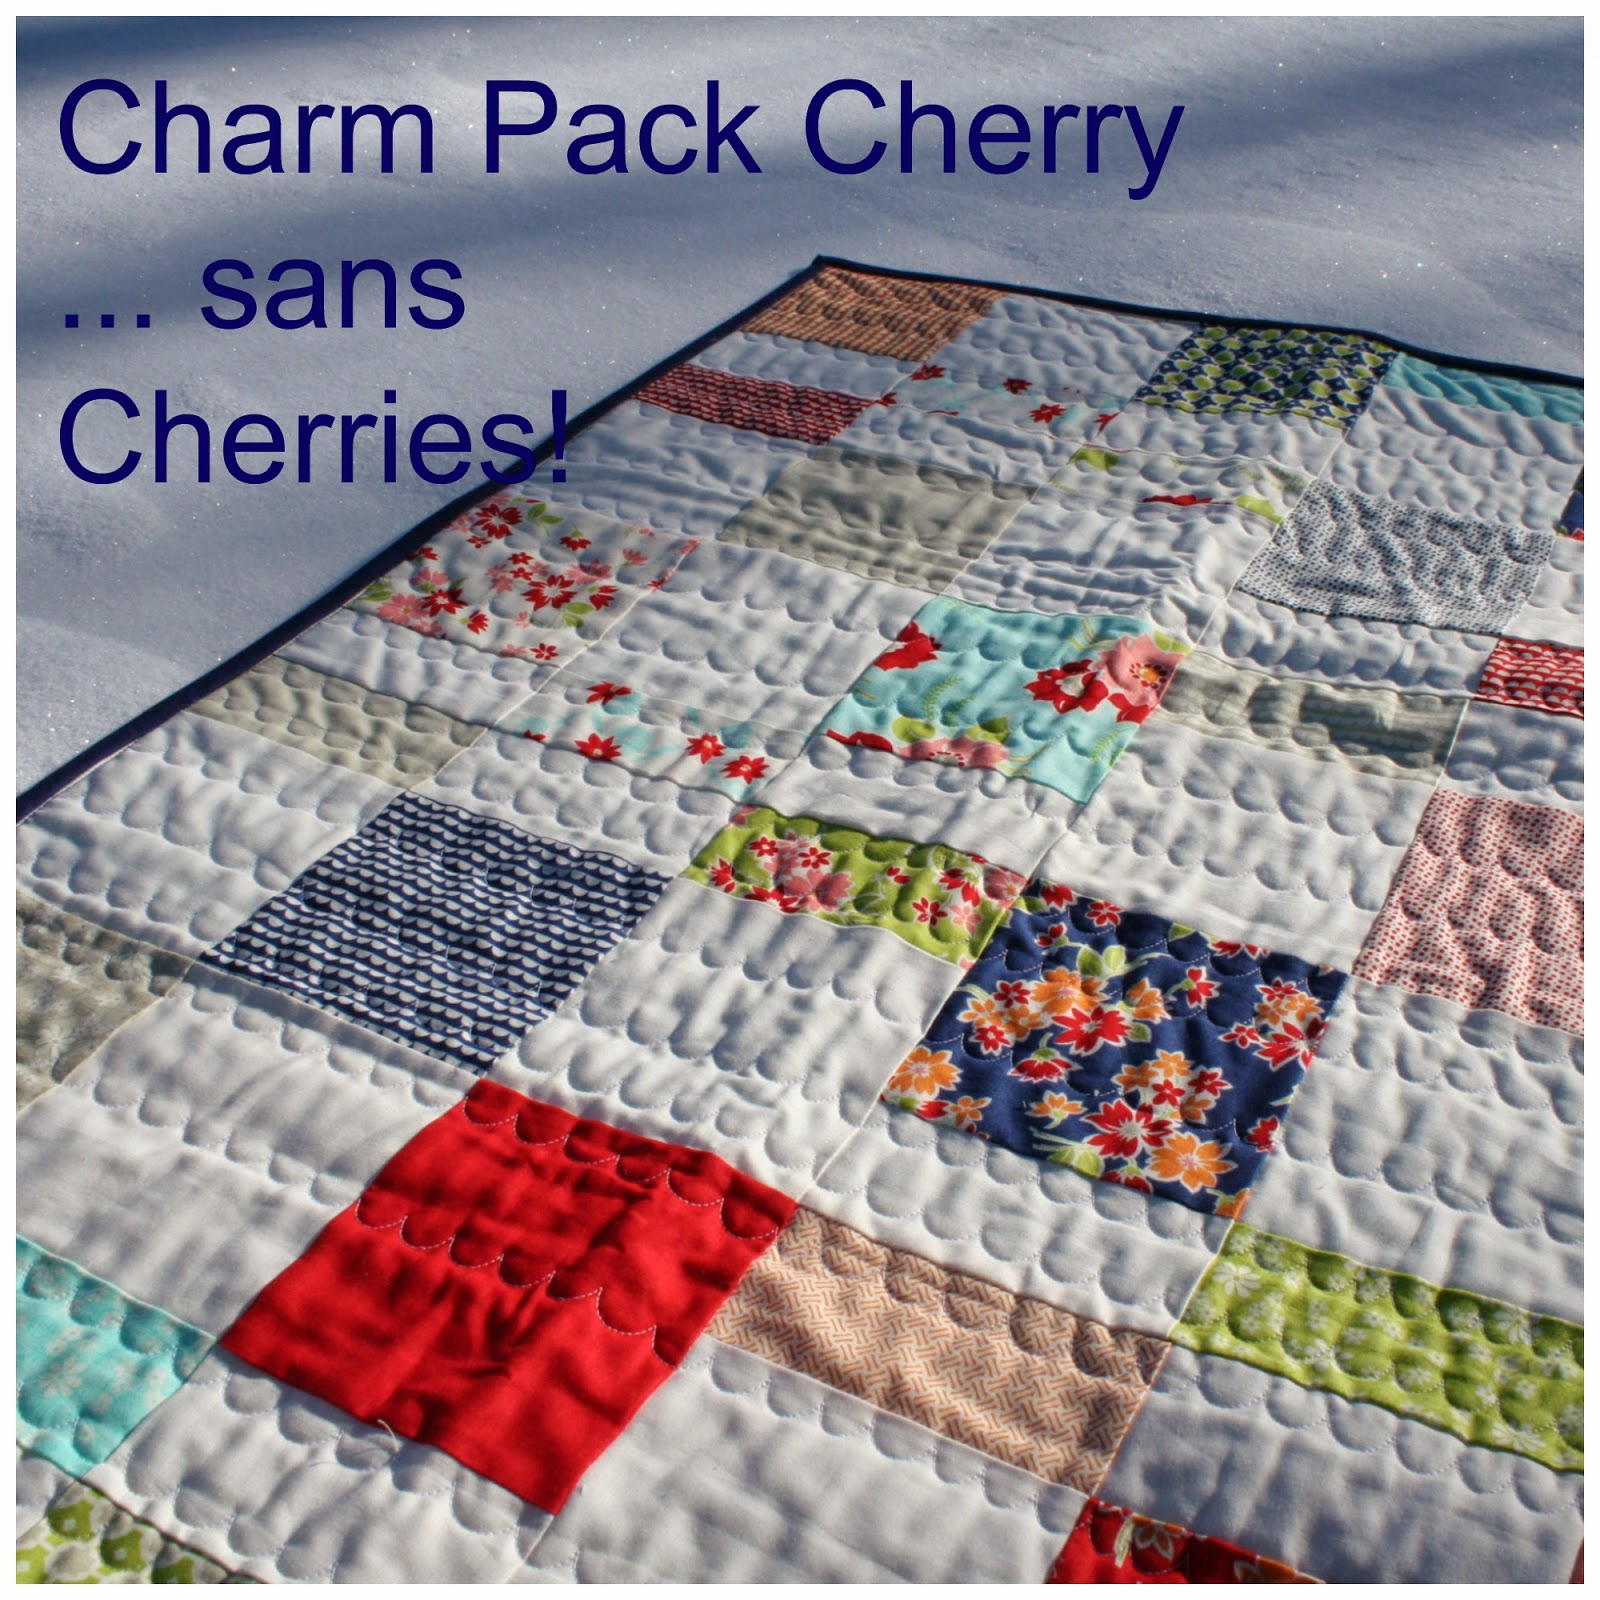 http://quarterinchfromtheedge.blogspot.ca/2015/01/friday-finish-charm-pack-cherry-sans.html